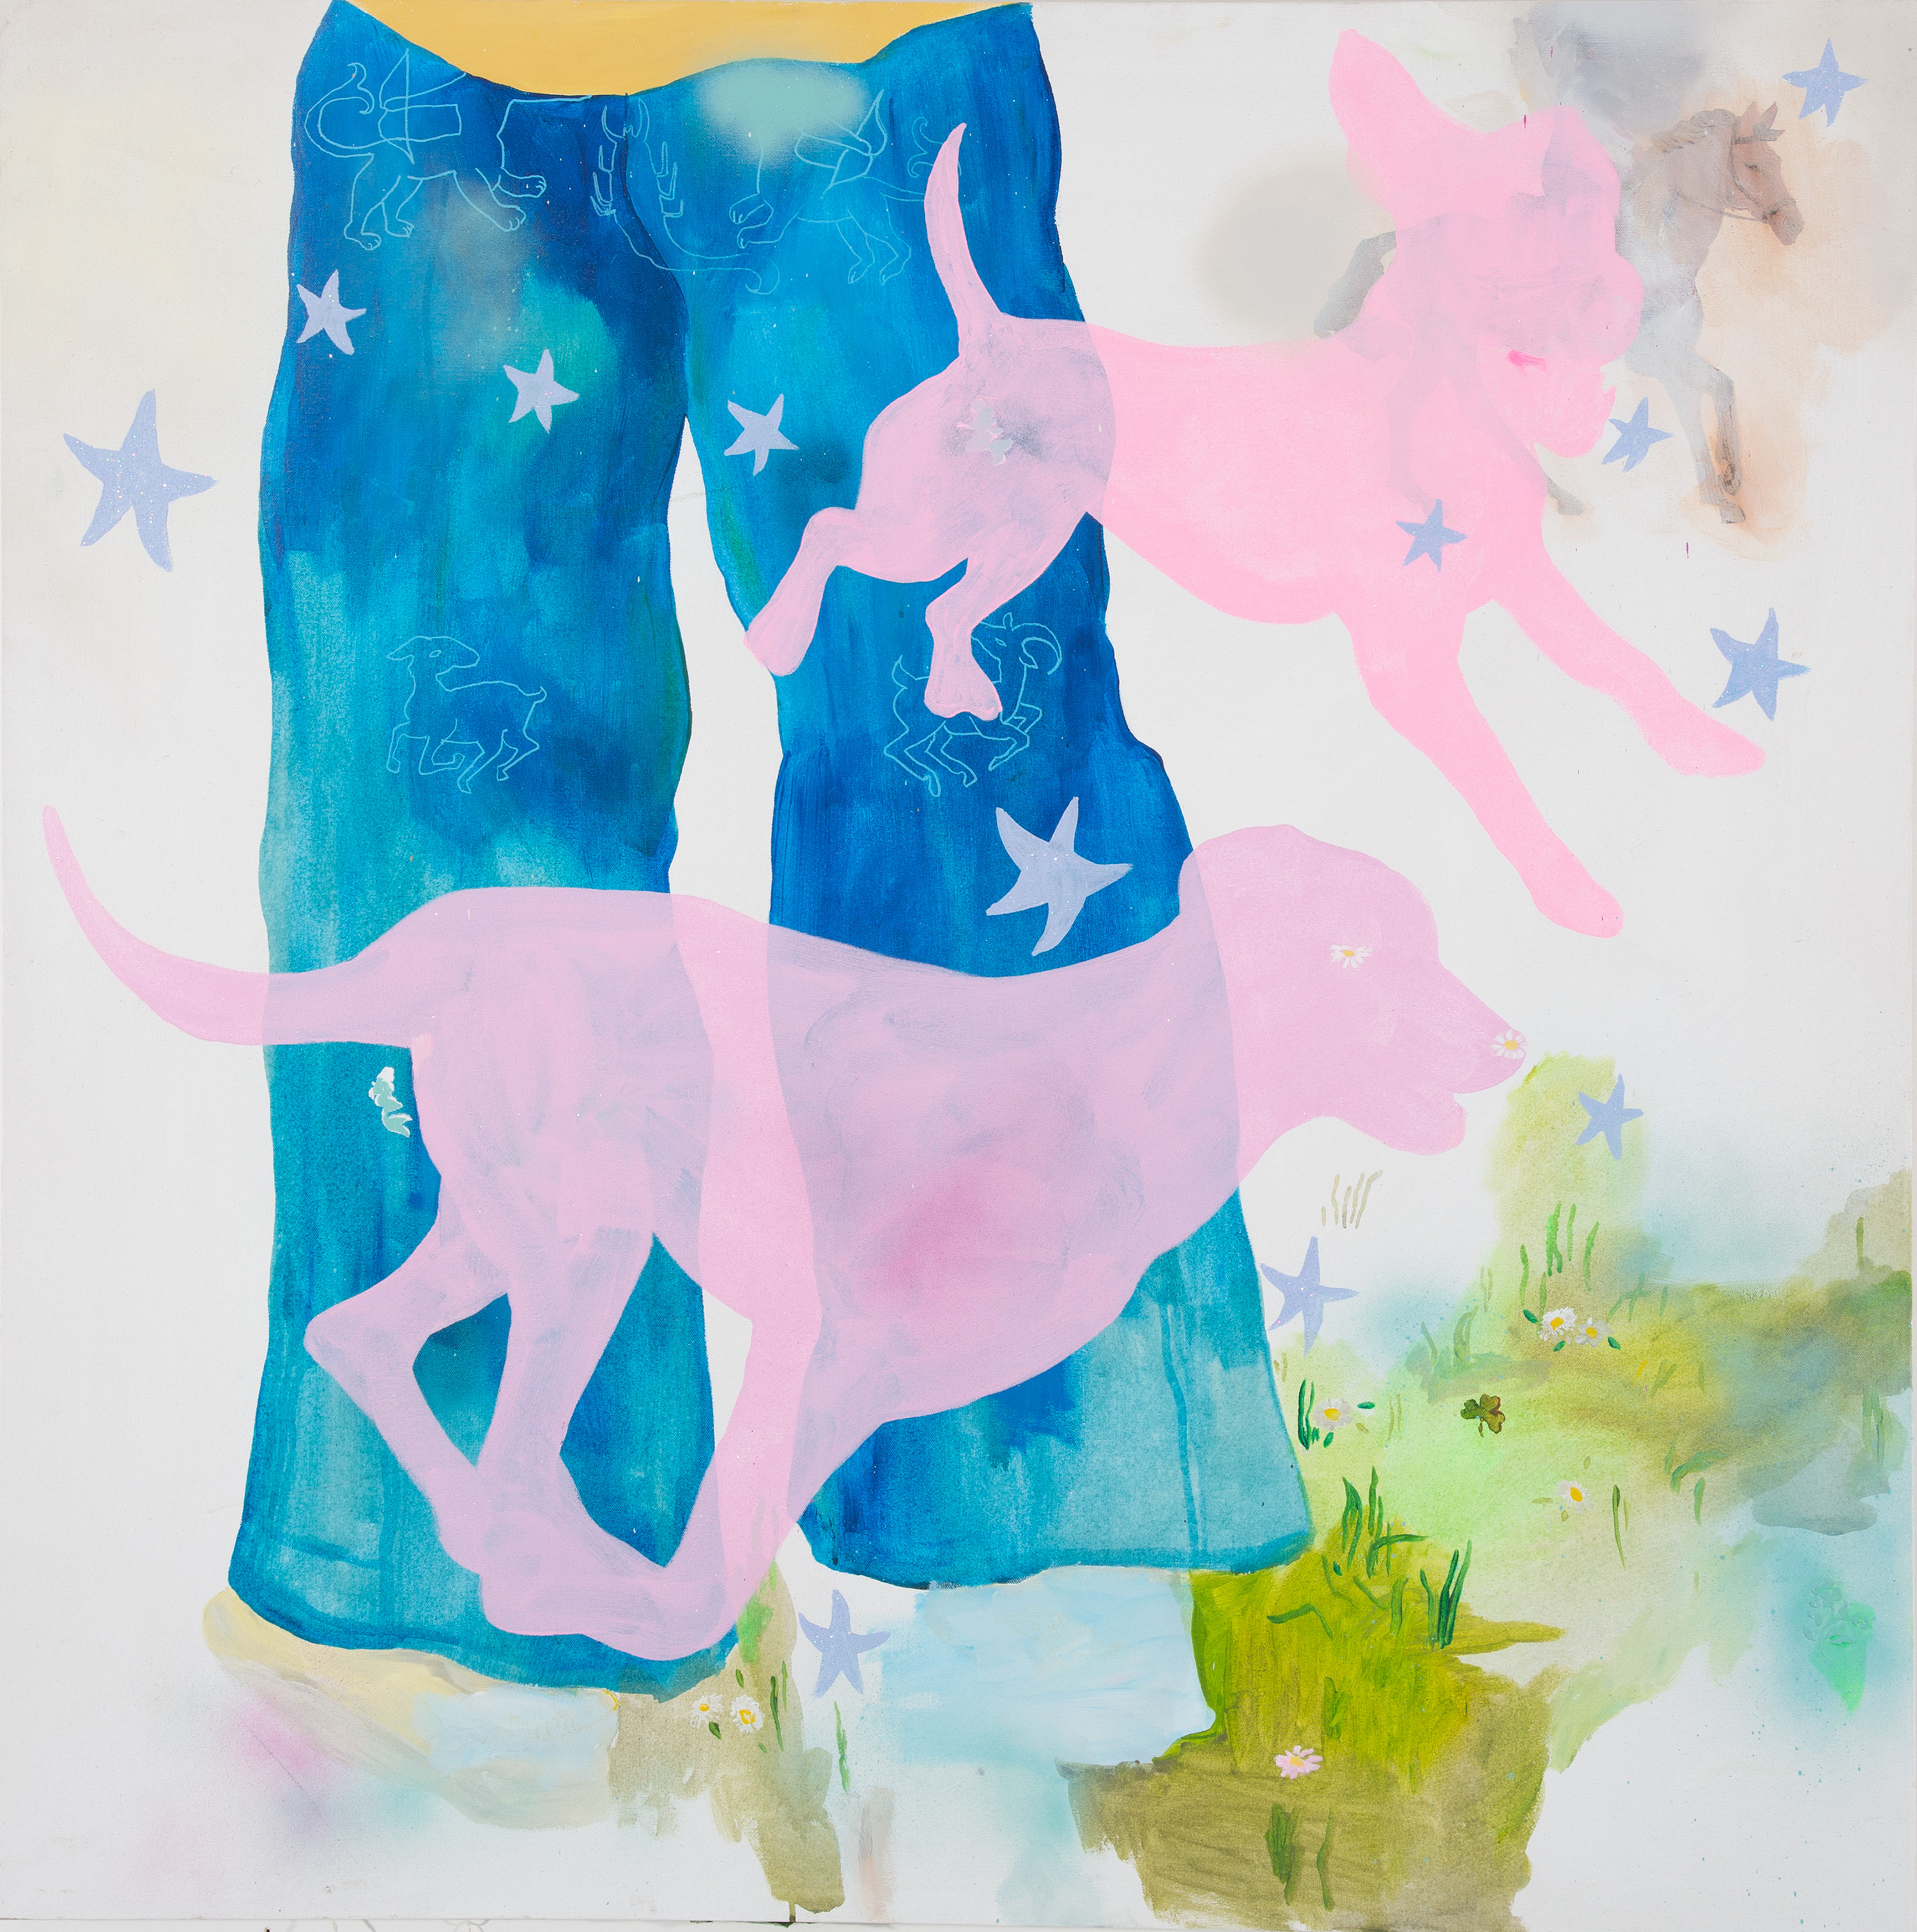 Square painting of the bottom half of a figure in jeans, pink running dogs.